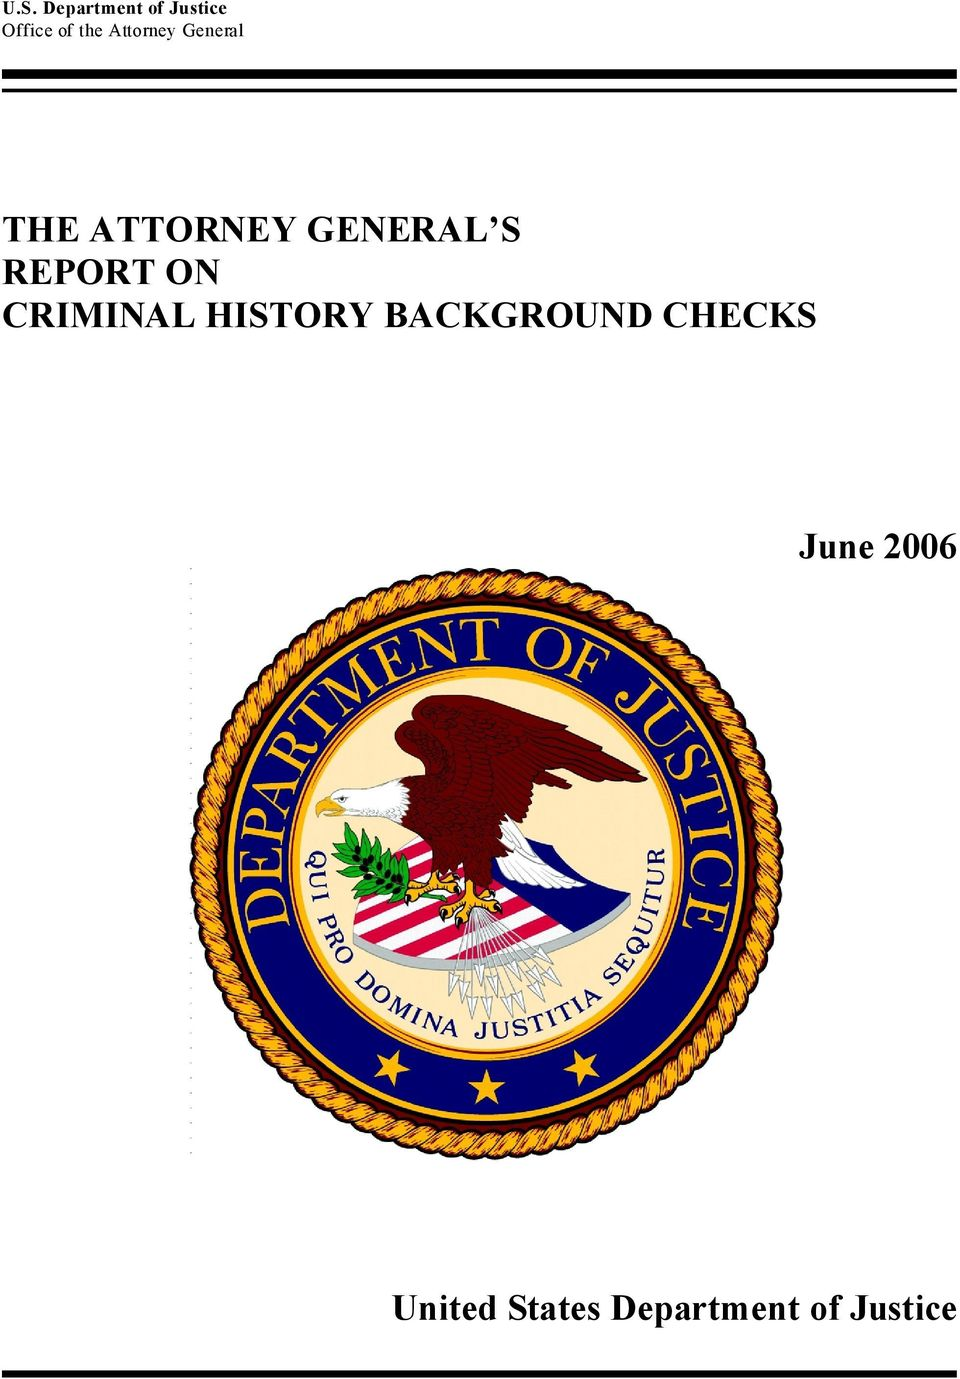 REPORT ON CRIMINAL HISTORY BACKGROUND